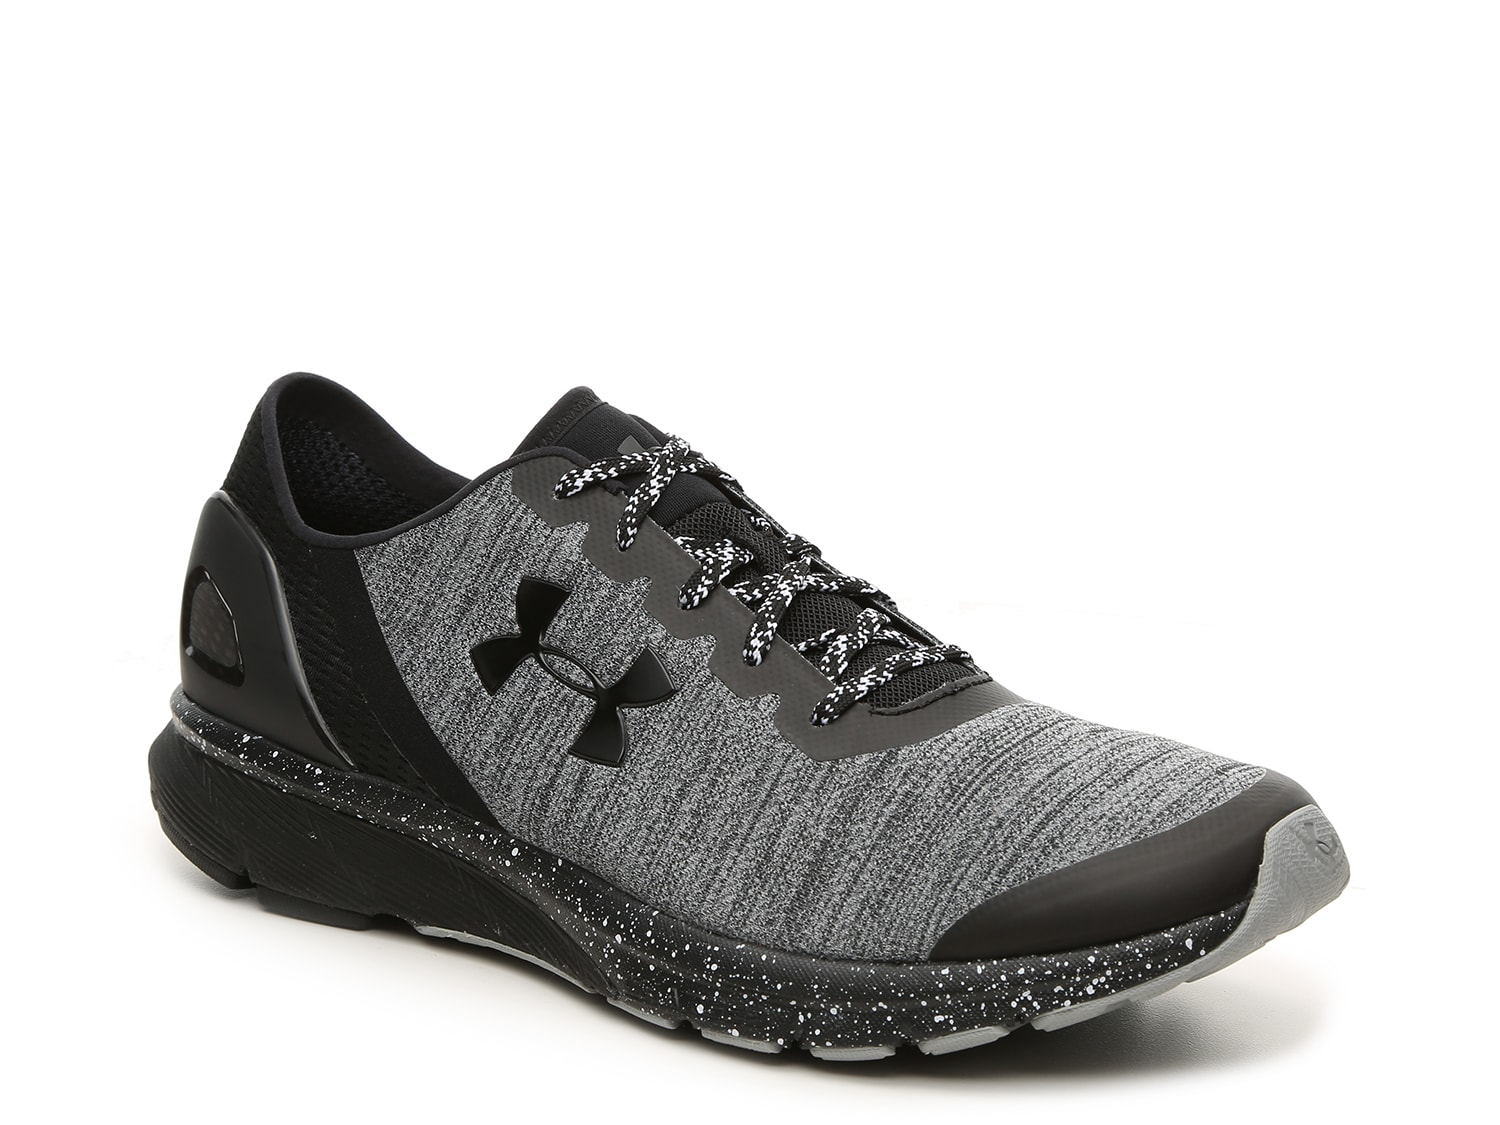 Misionero Izar Entrelazamiento  Under Armour Charged Escape Lightweight Running Shoe - Men's Men's Shoes |  DSW